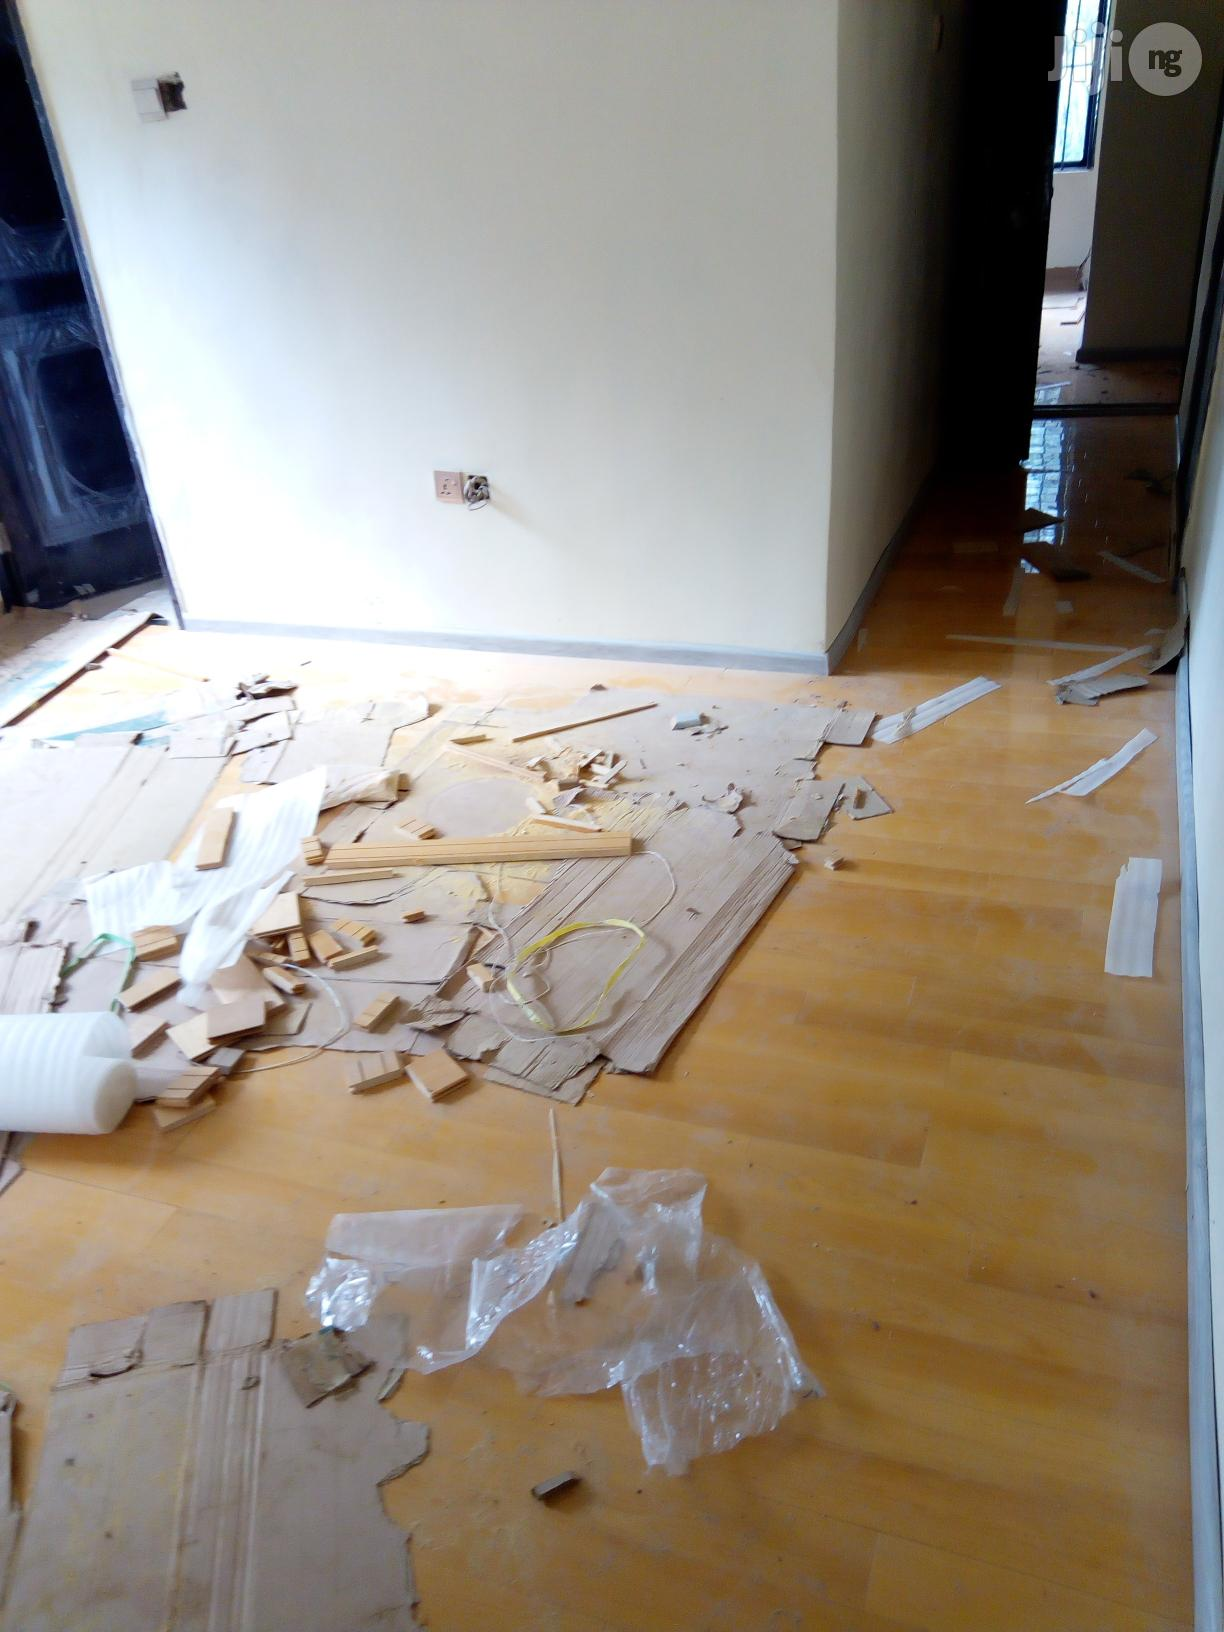 Wooden Floor Tiles Interior | Building Materials for sale in Nnewi, Anambra State, Nigeria